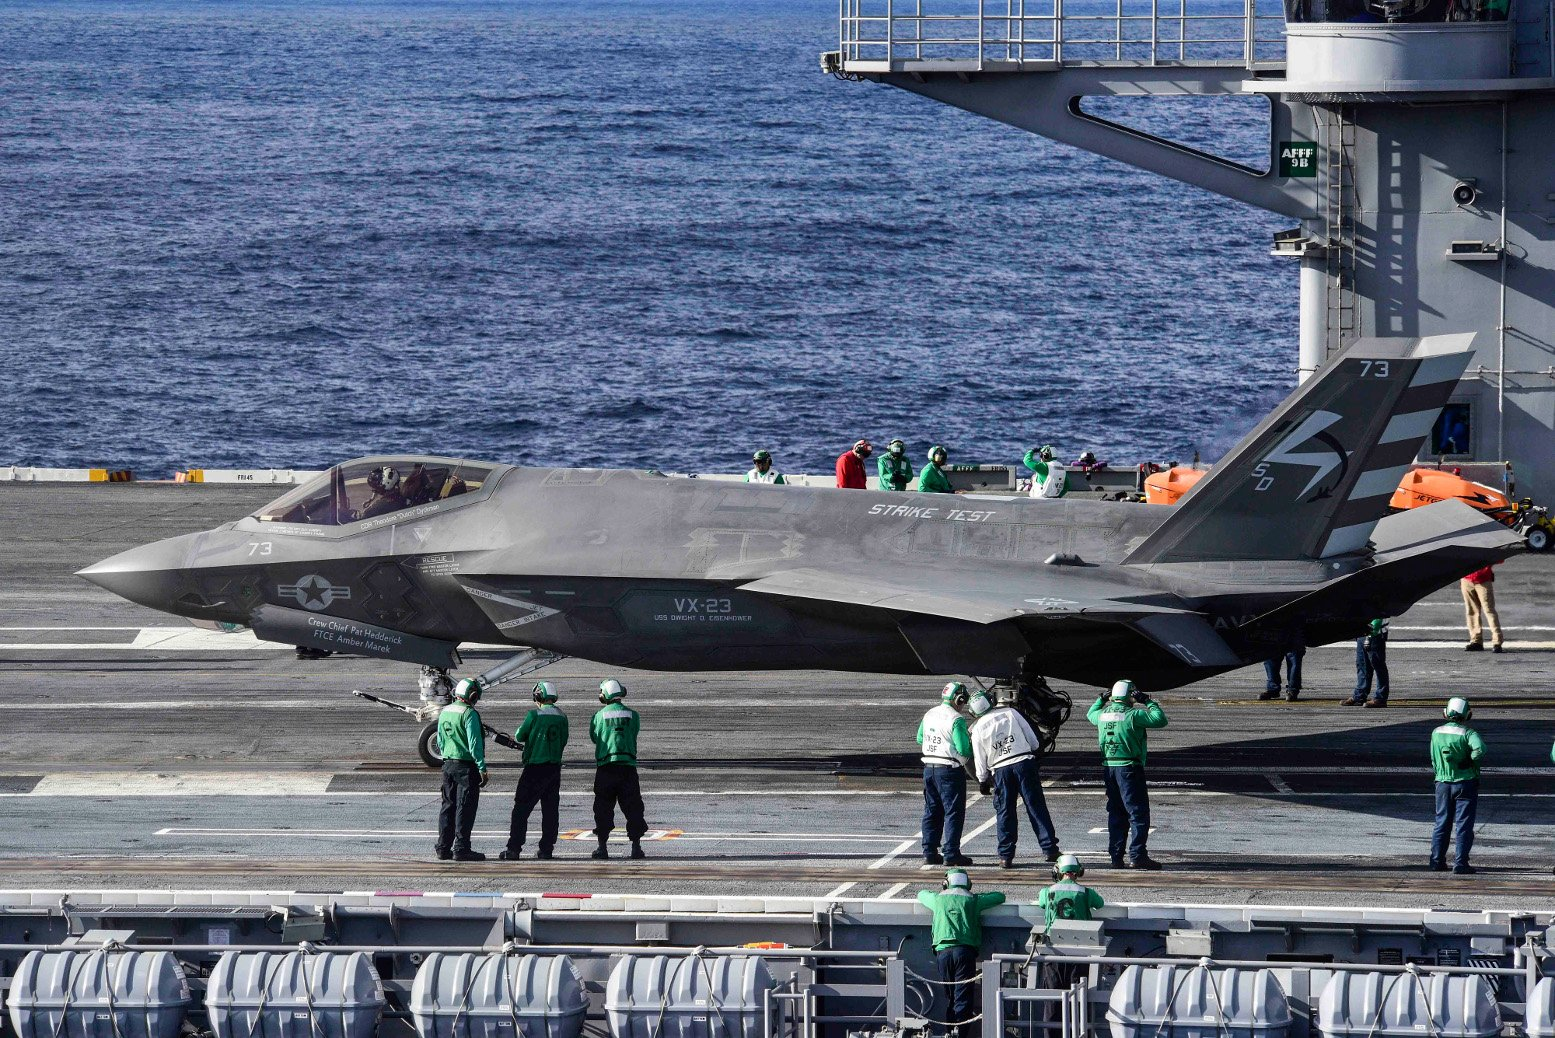 Game Over: The F-35 Will Be Ready to Attack From Aircraft Carriers | The National Interest